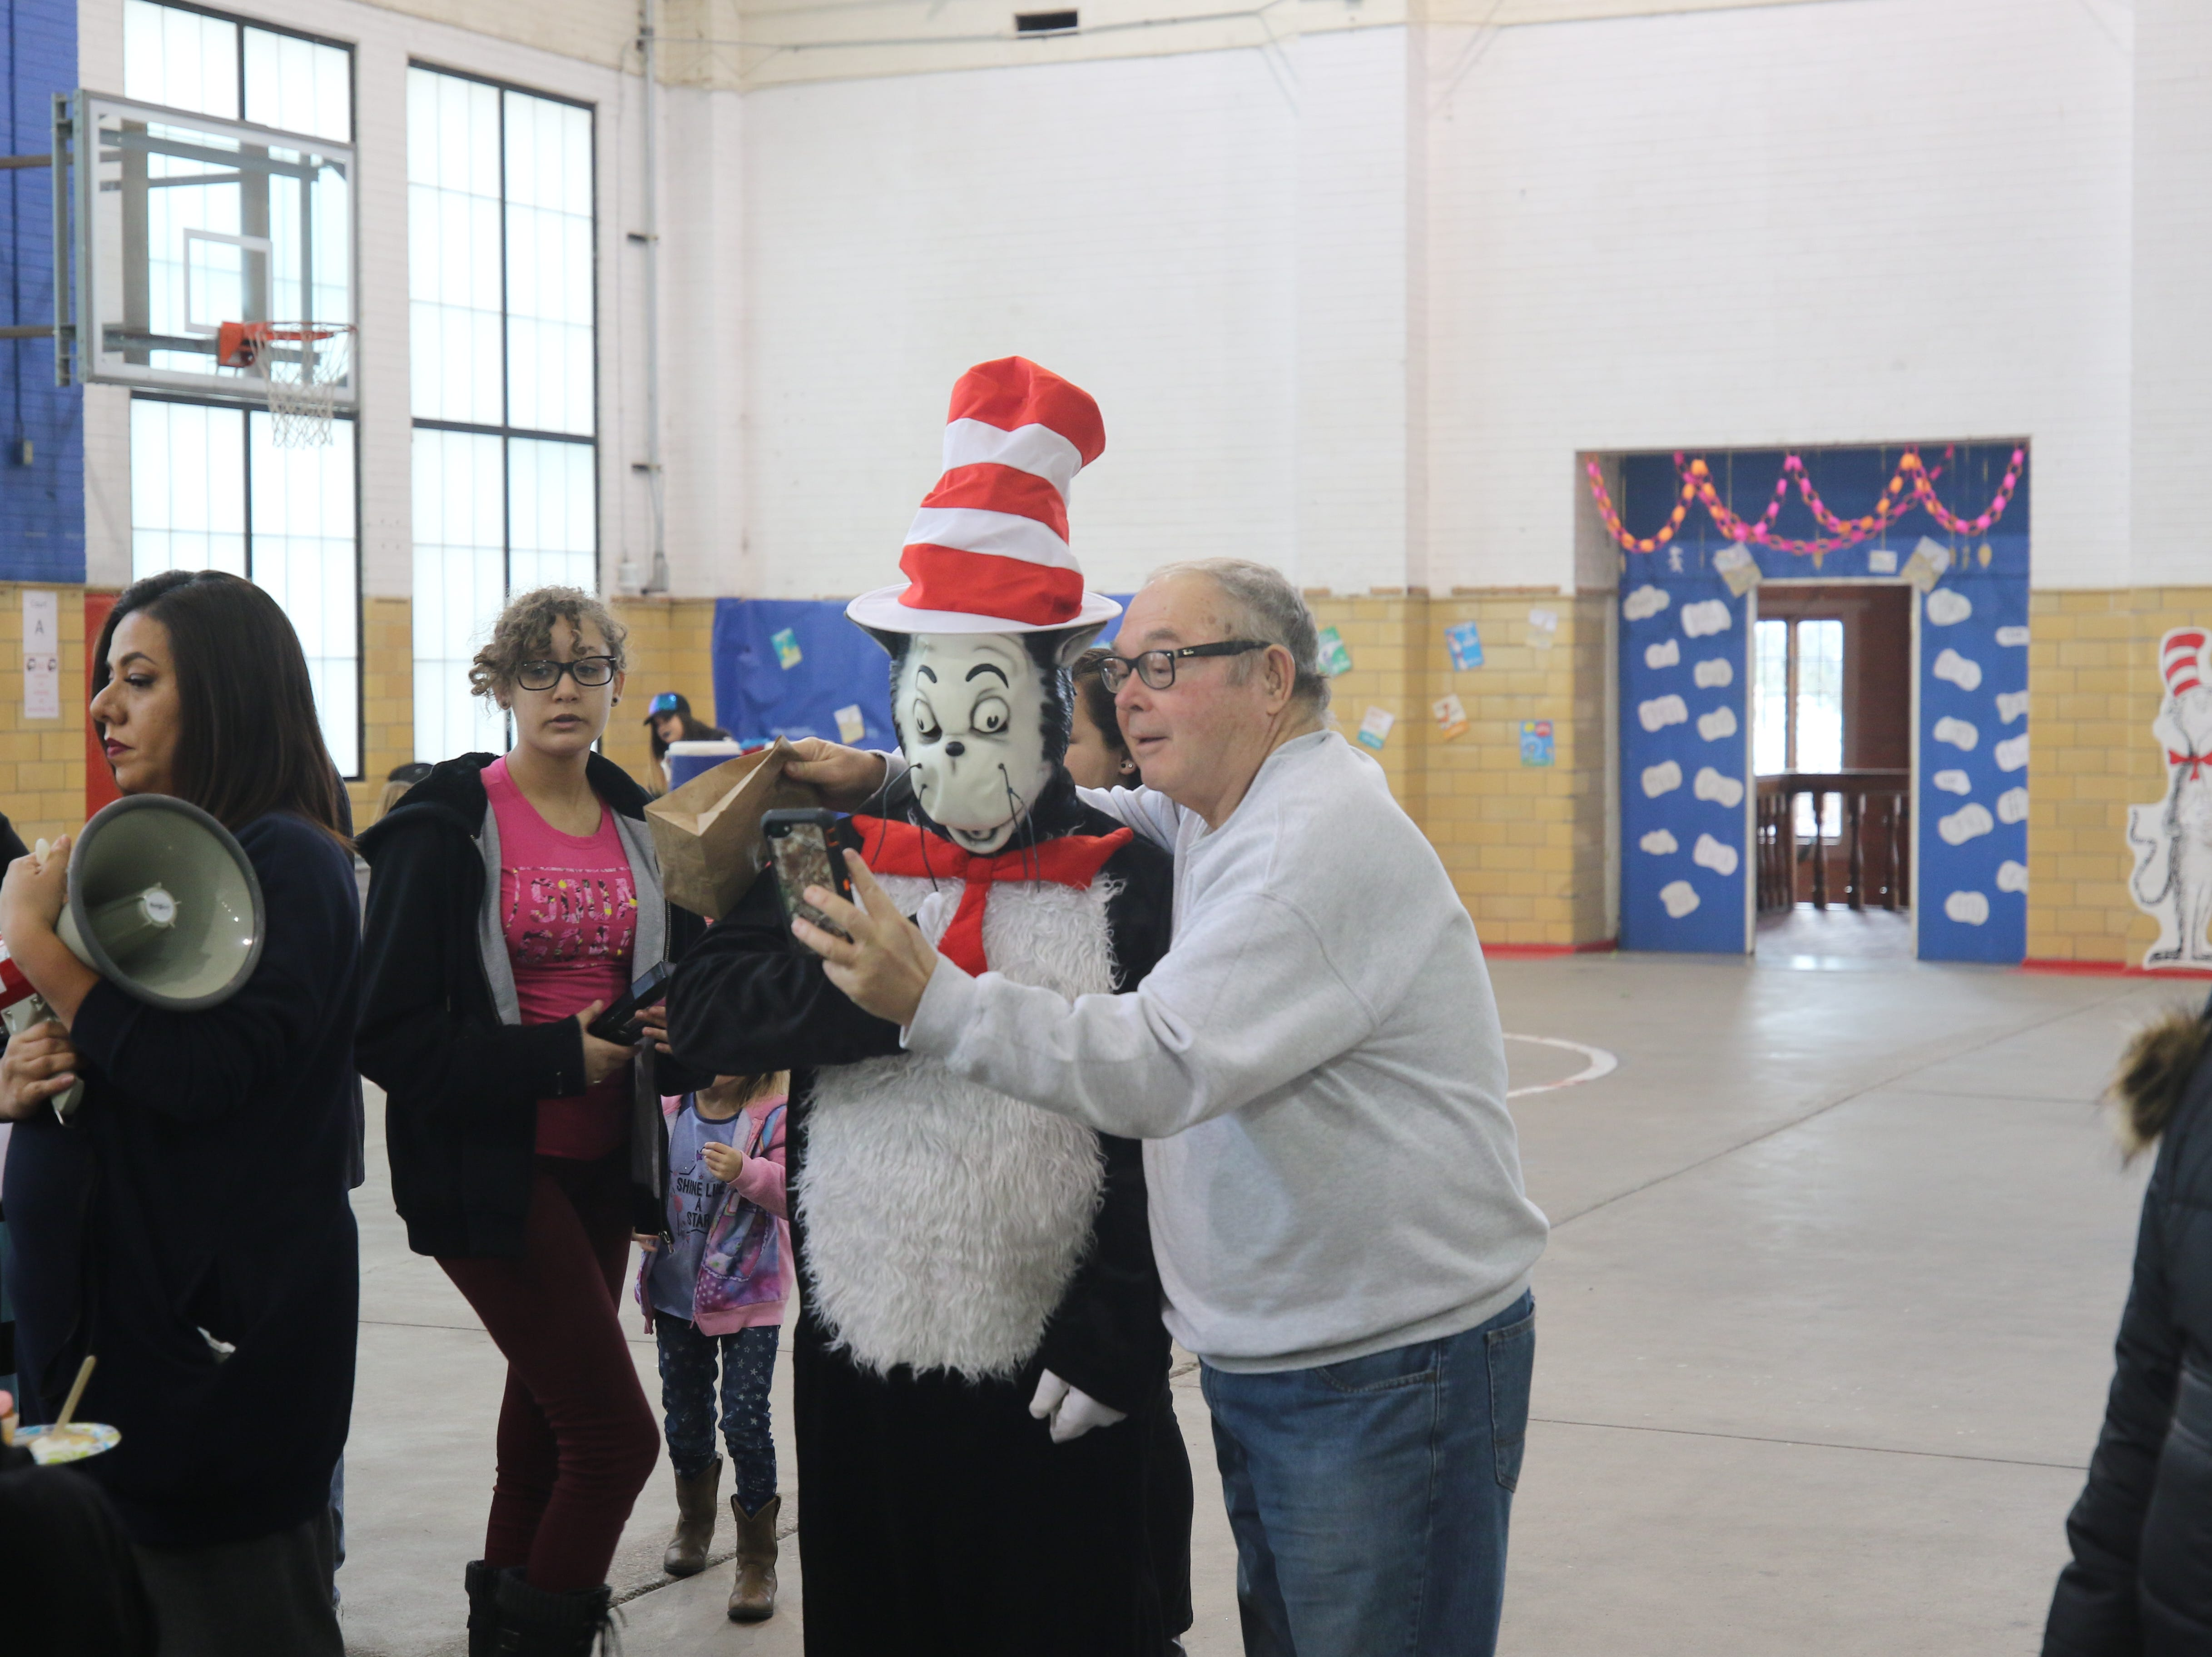 Selfies were abundant at the Riverside Recreation Center which celebrated Dr. Seuss' birthday.